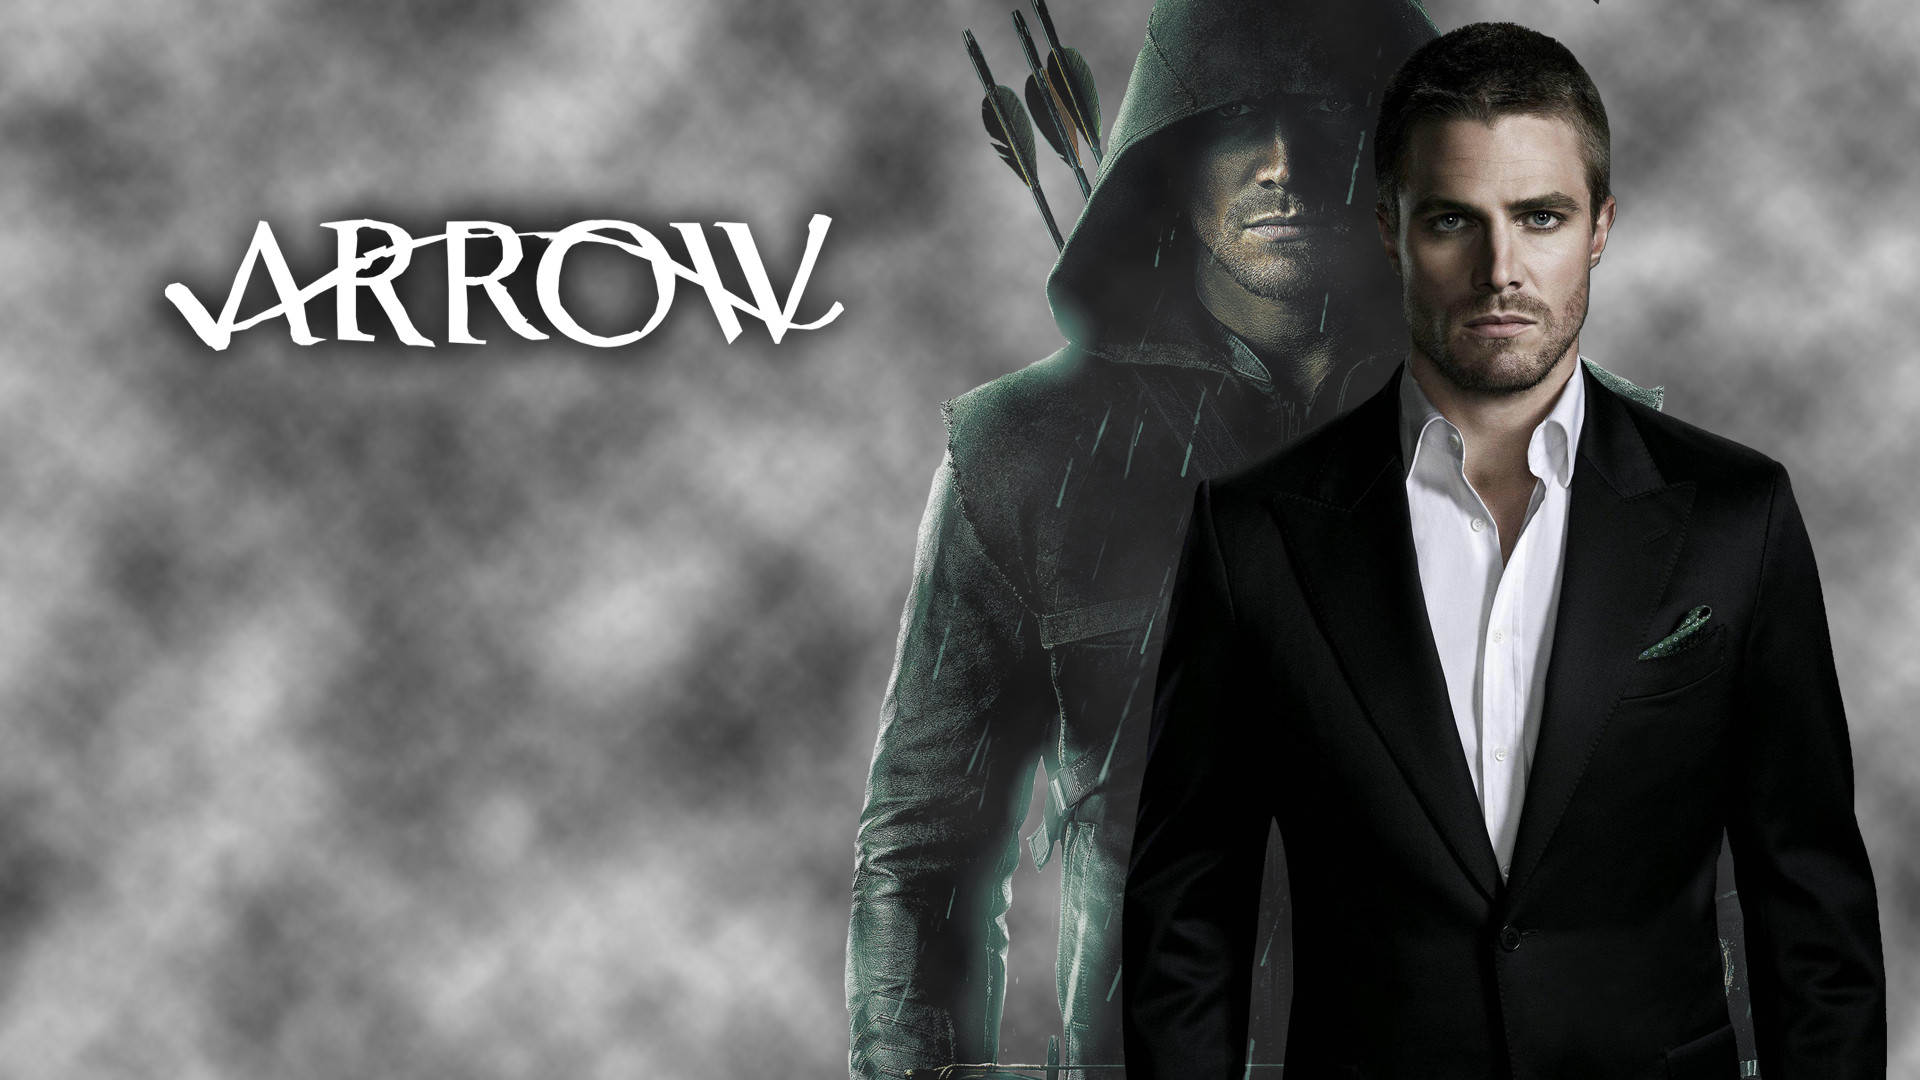 1920x1080 DeviantArt: More Like Oliver Queen/Arrow Wallpaper  by .